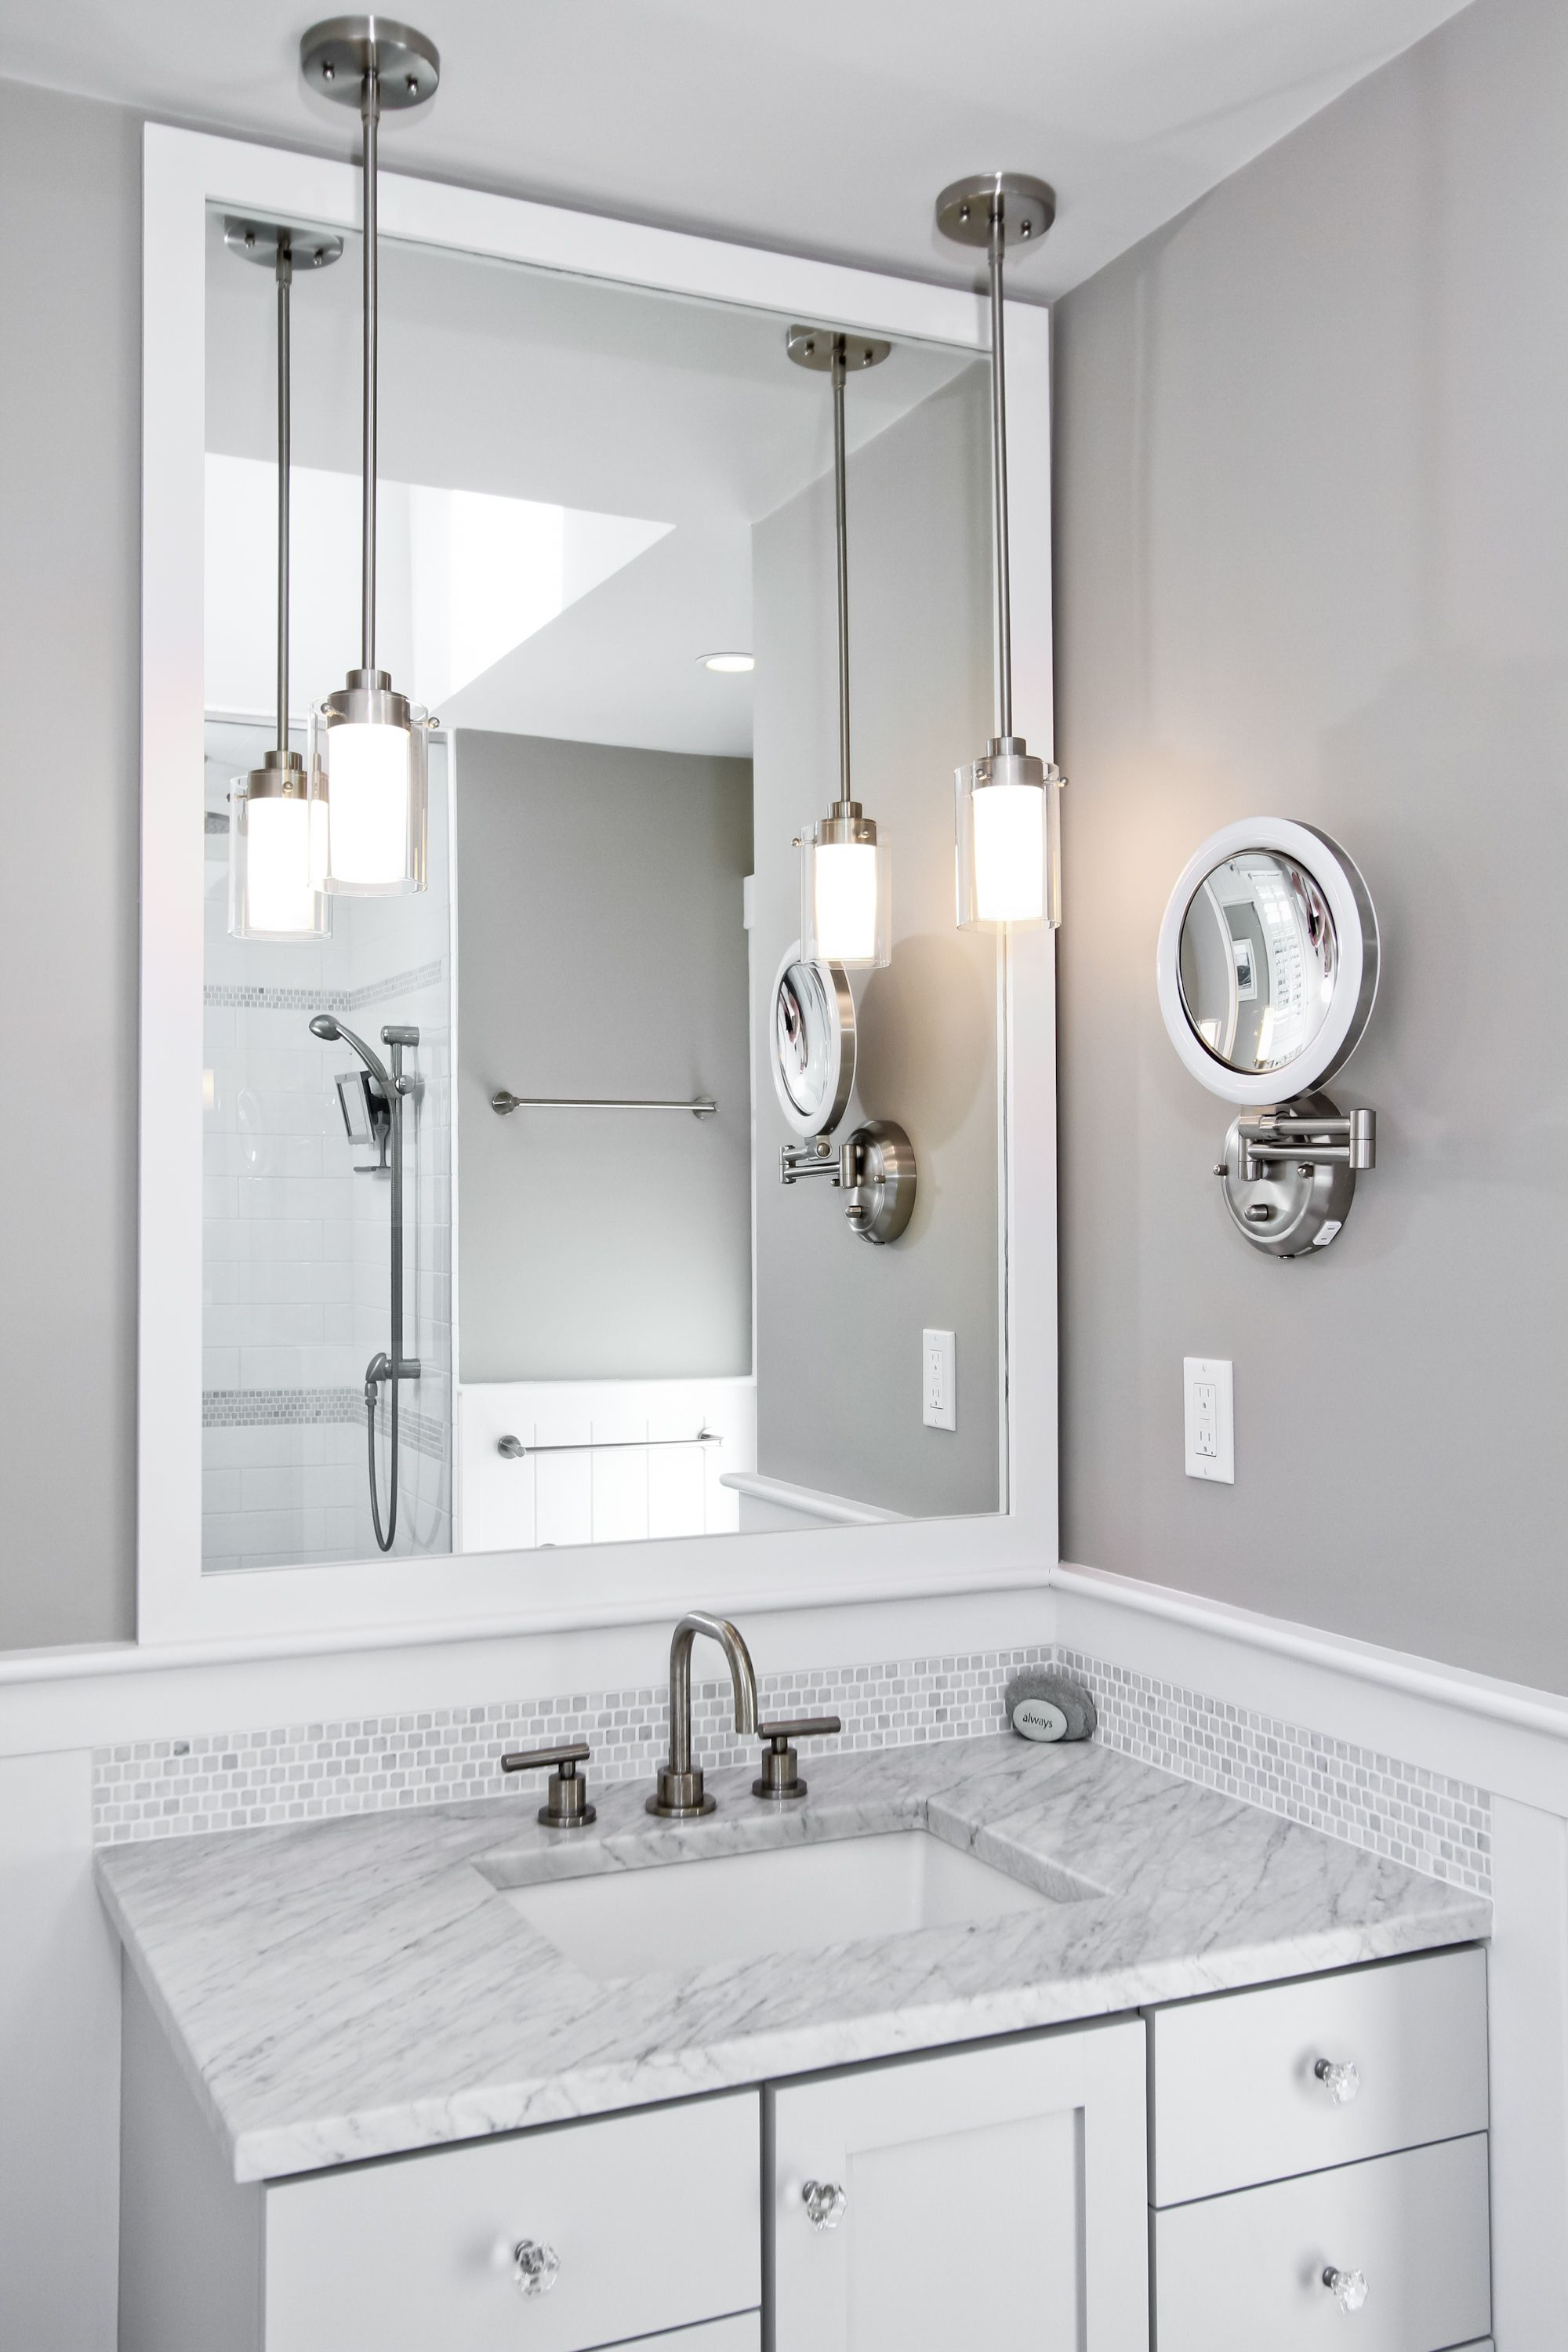 Pin by WORKS by Jesse DeBenedictis on Bathroom Remodeling | Pinterest